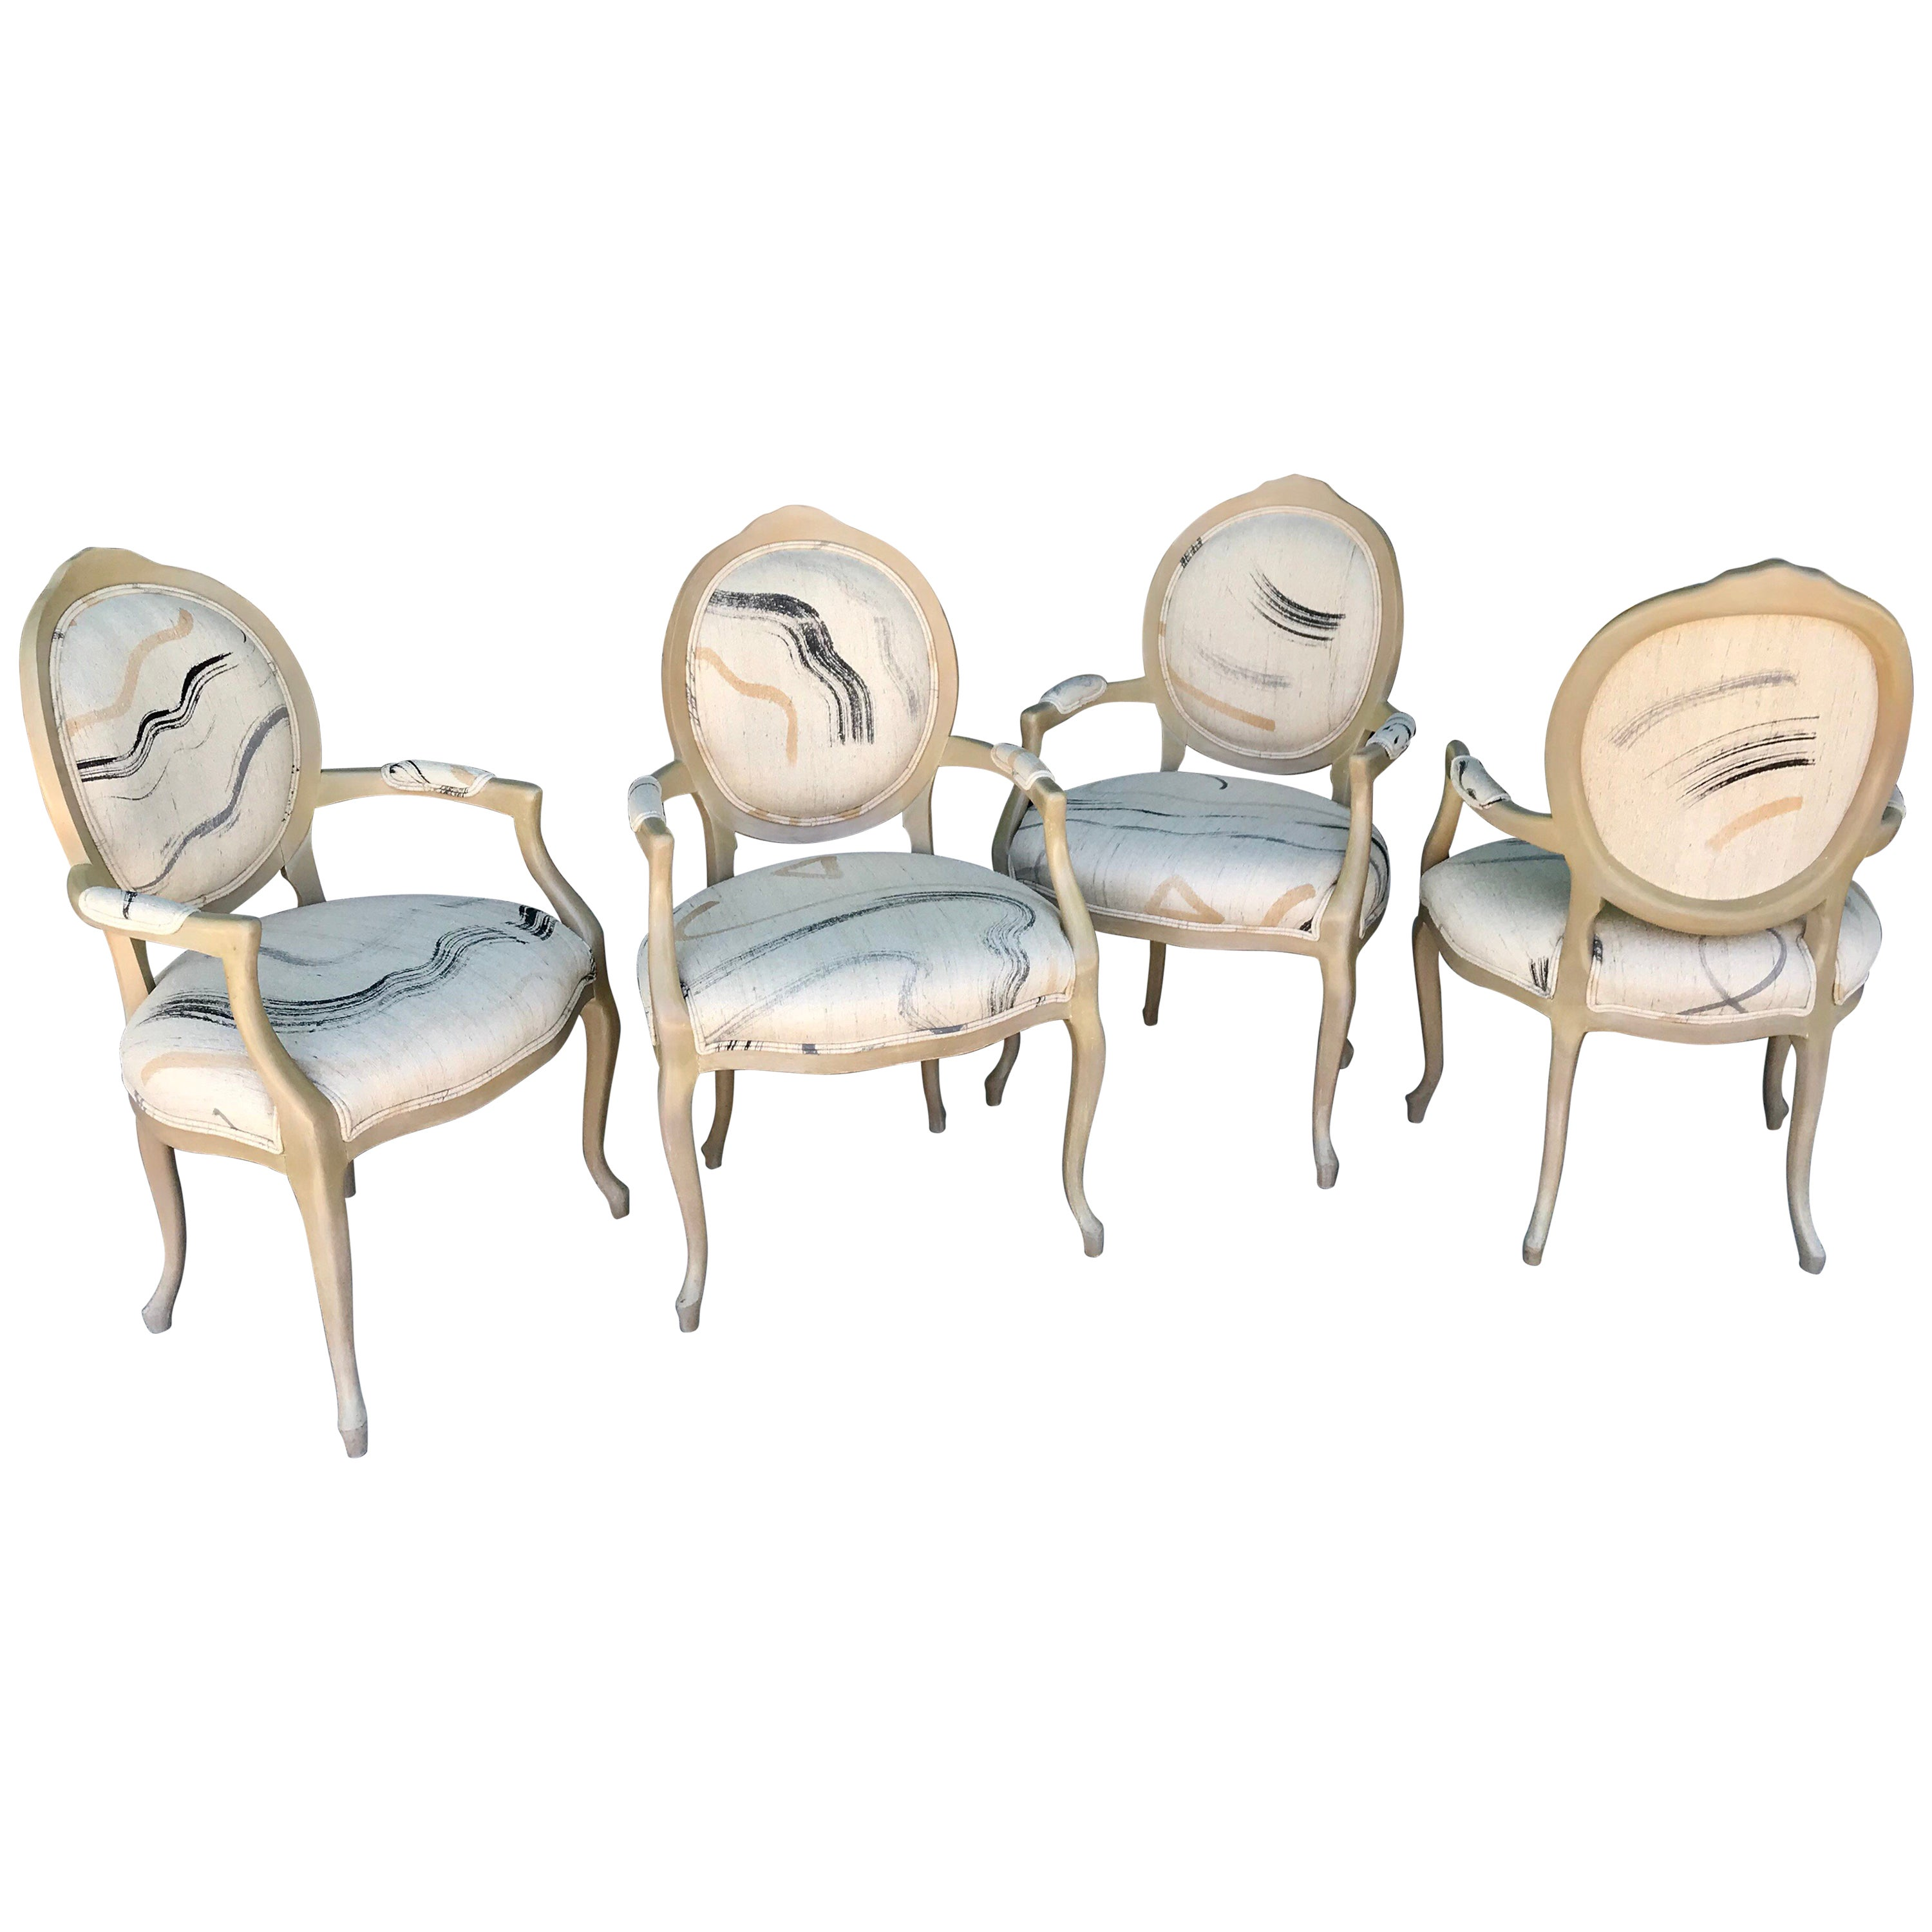 Set of four vintage modern art dining or game table chairs from steve chase for sale at 1stdibs